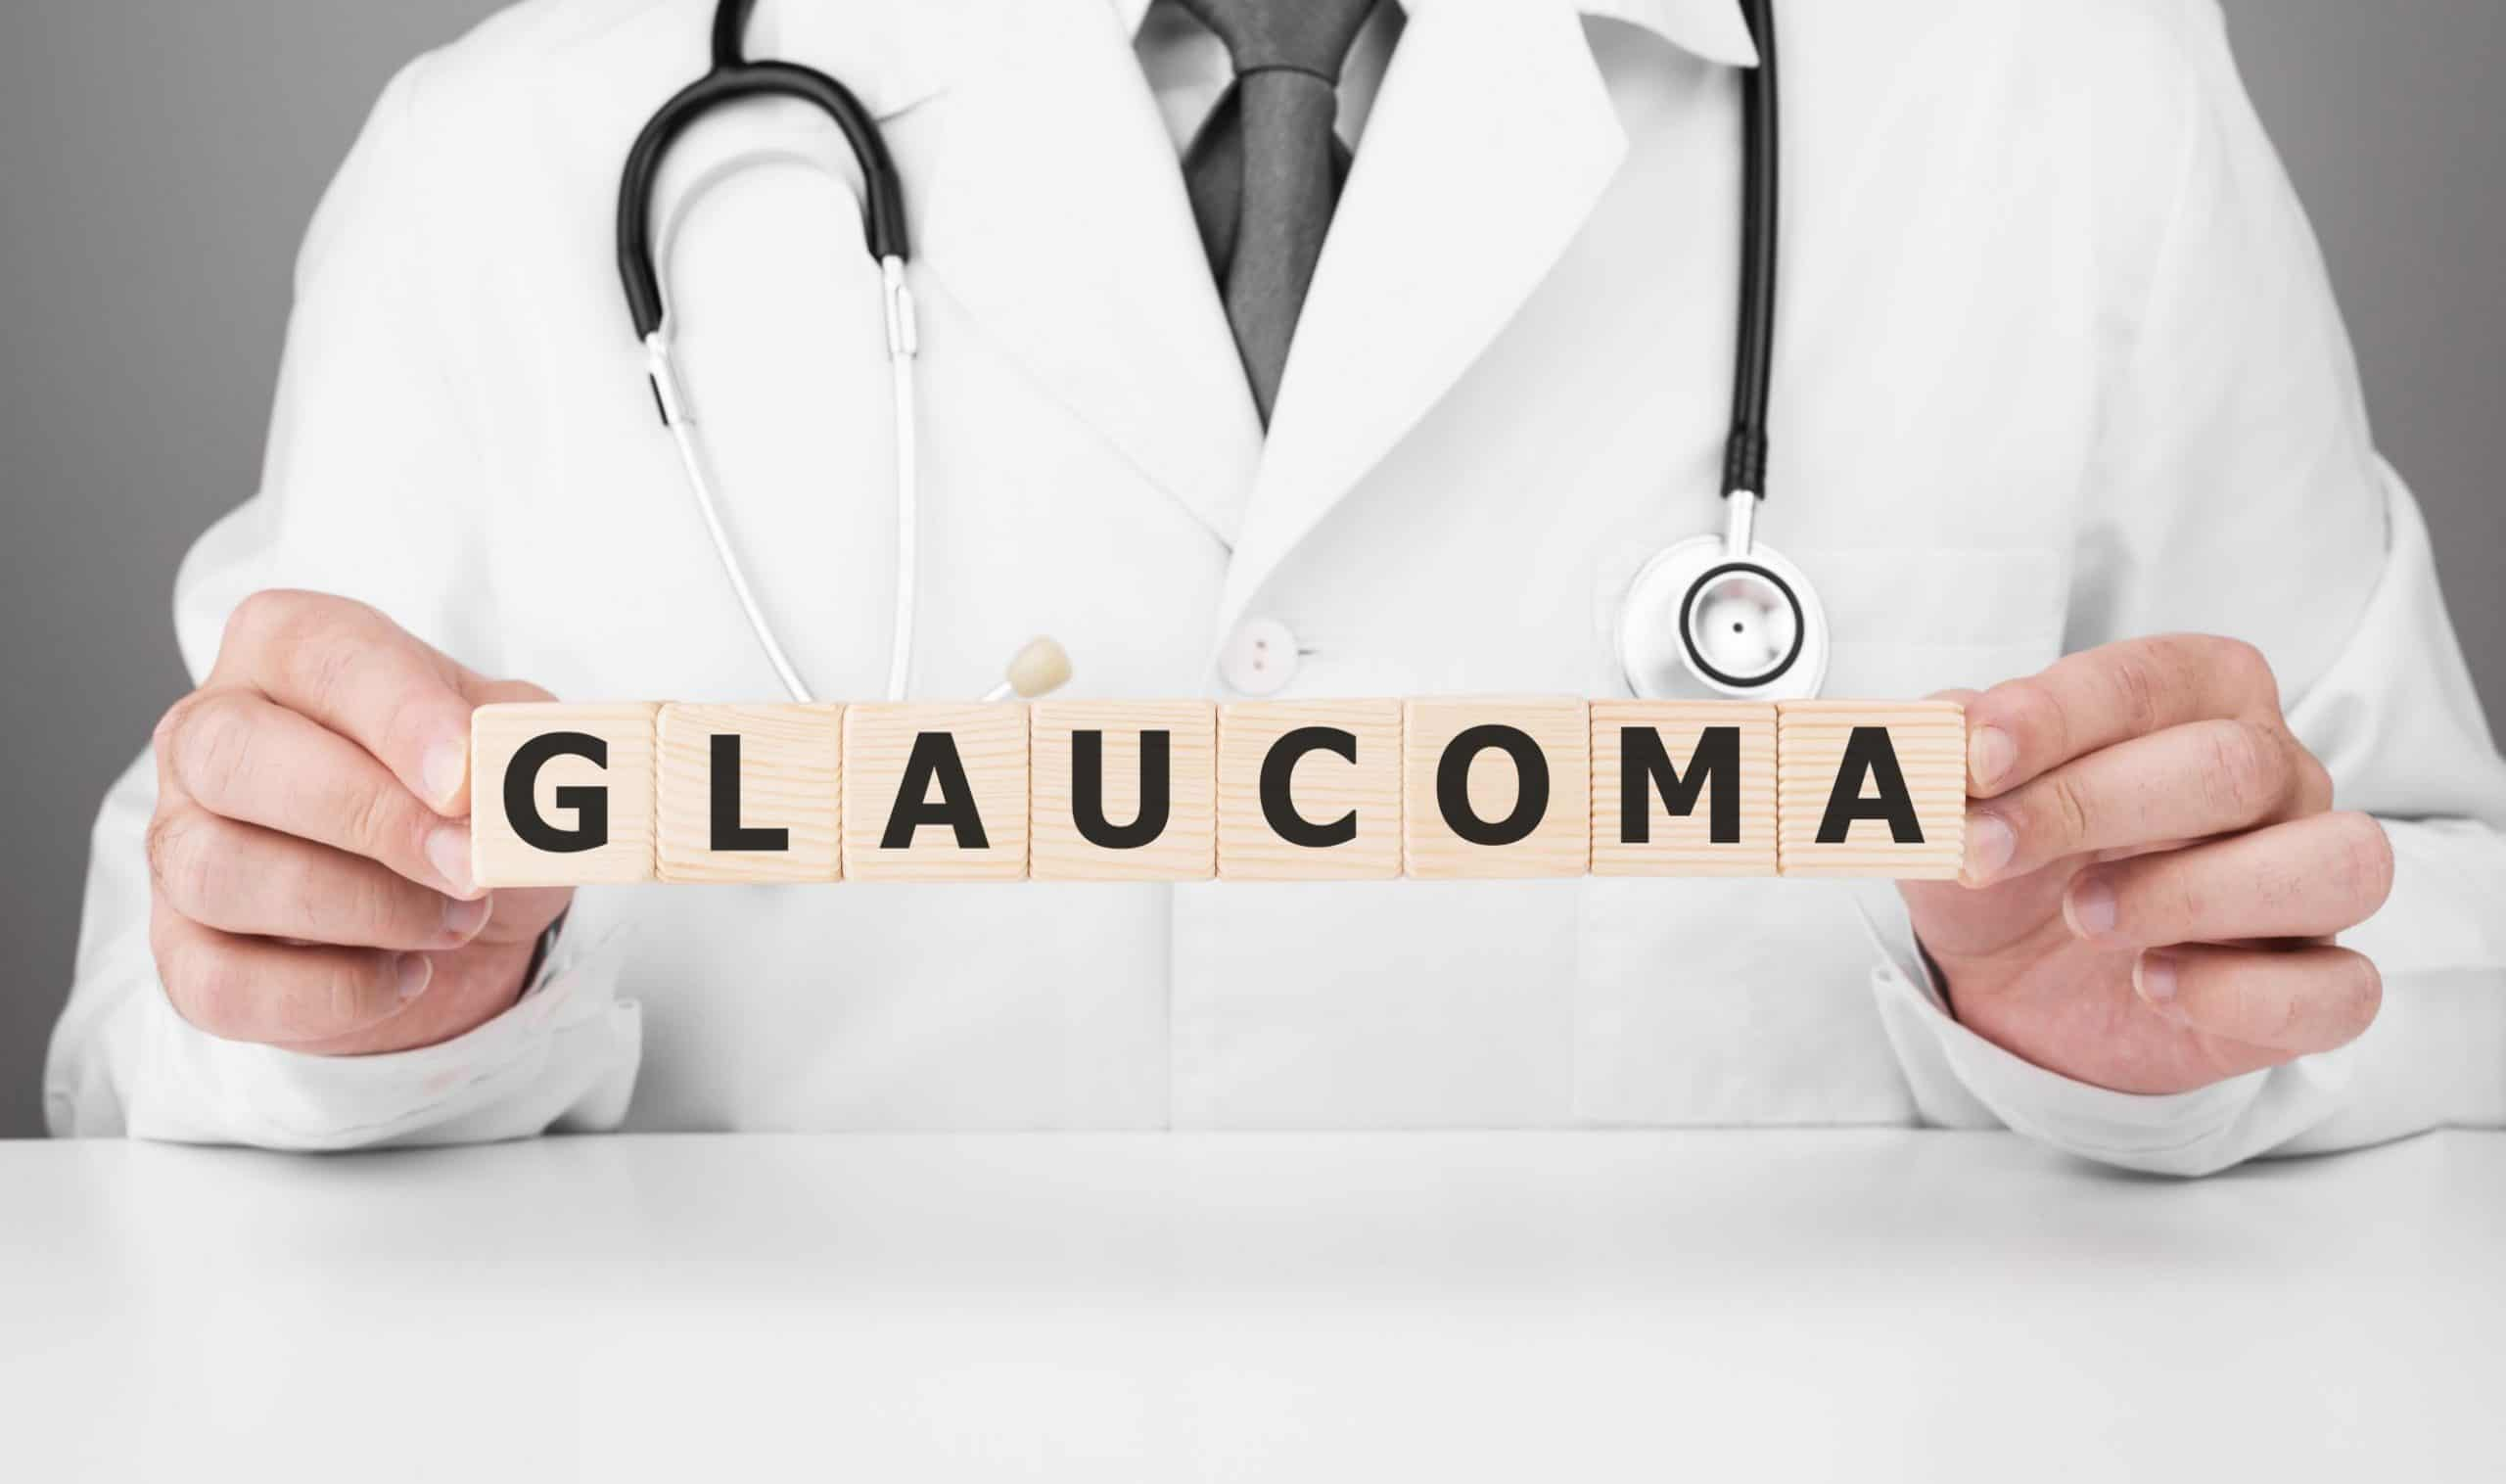 Glaucoma: Warning Signs to Look Out For